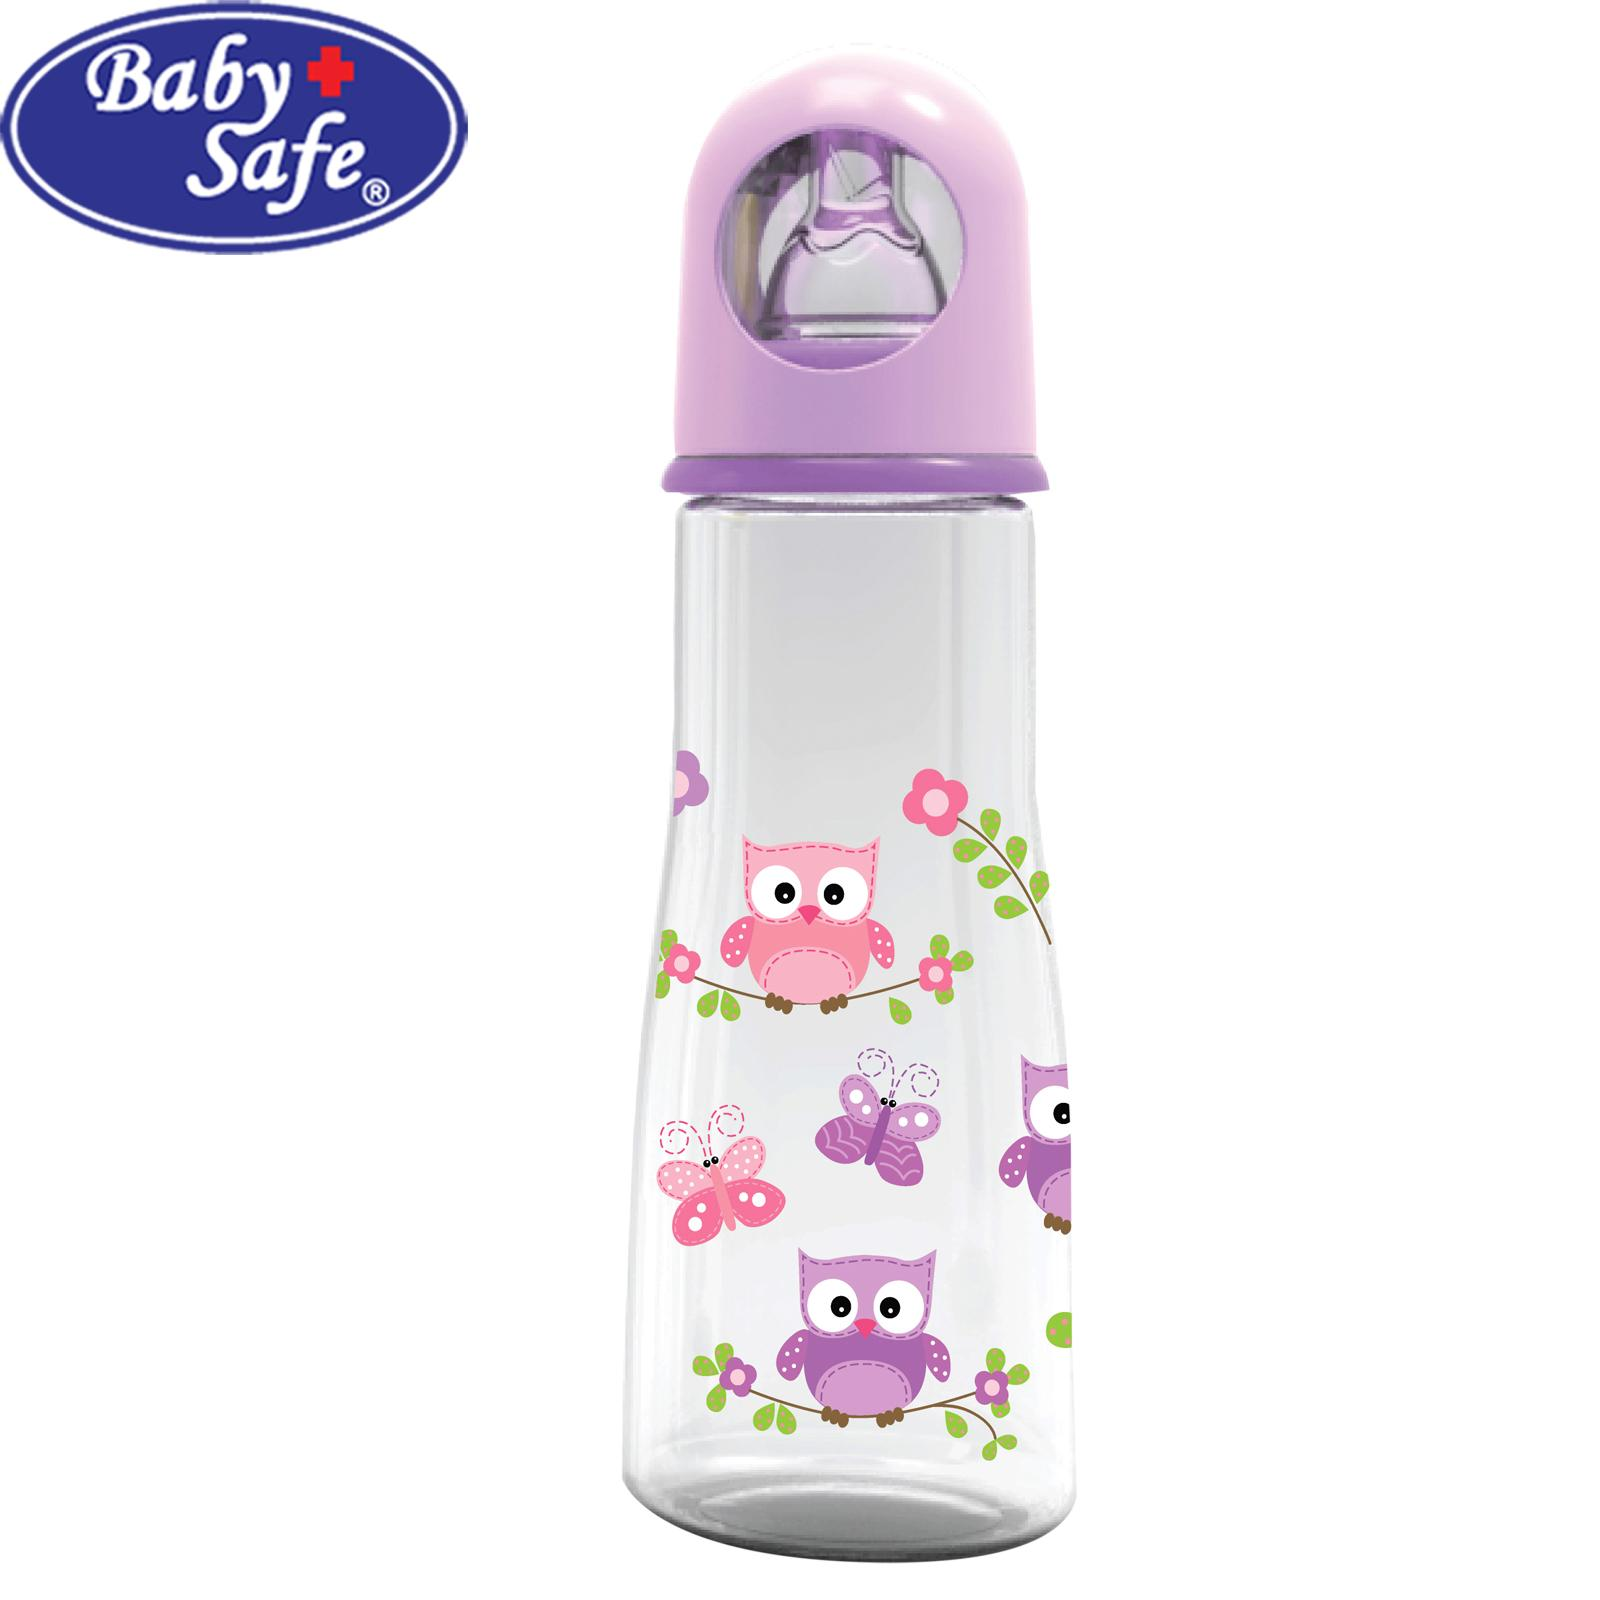 Baby Safe Botol Susu / Feeding Bottle 250 ml JP003